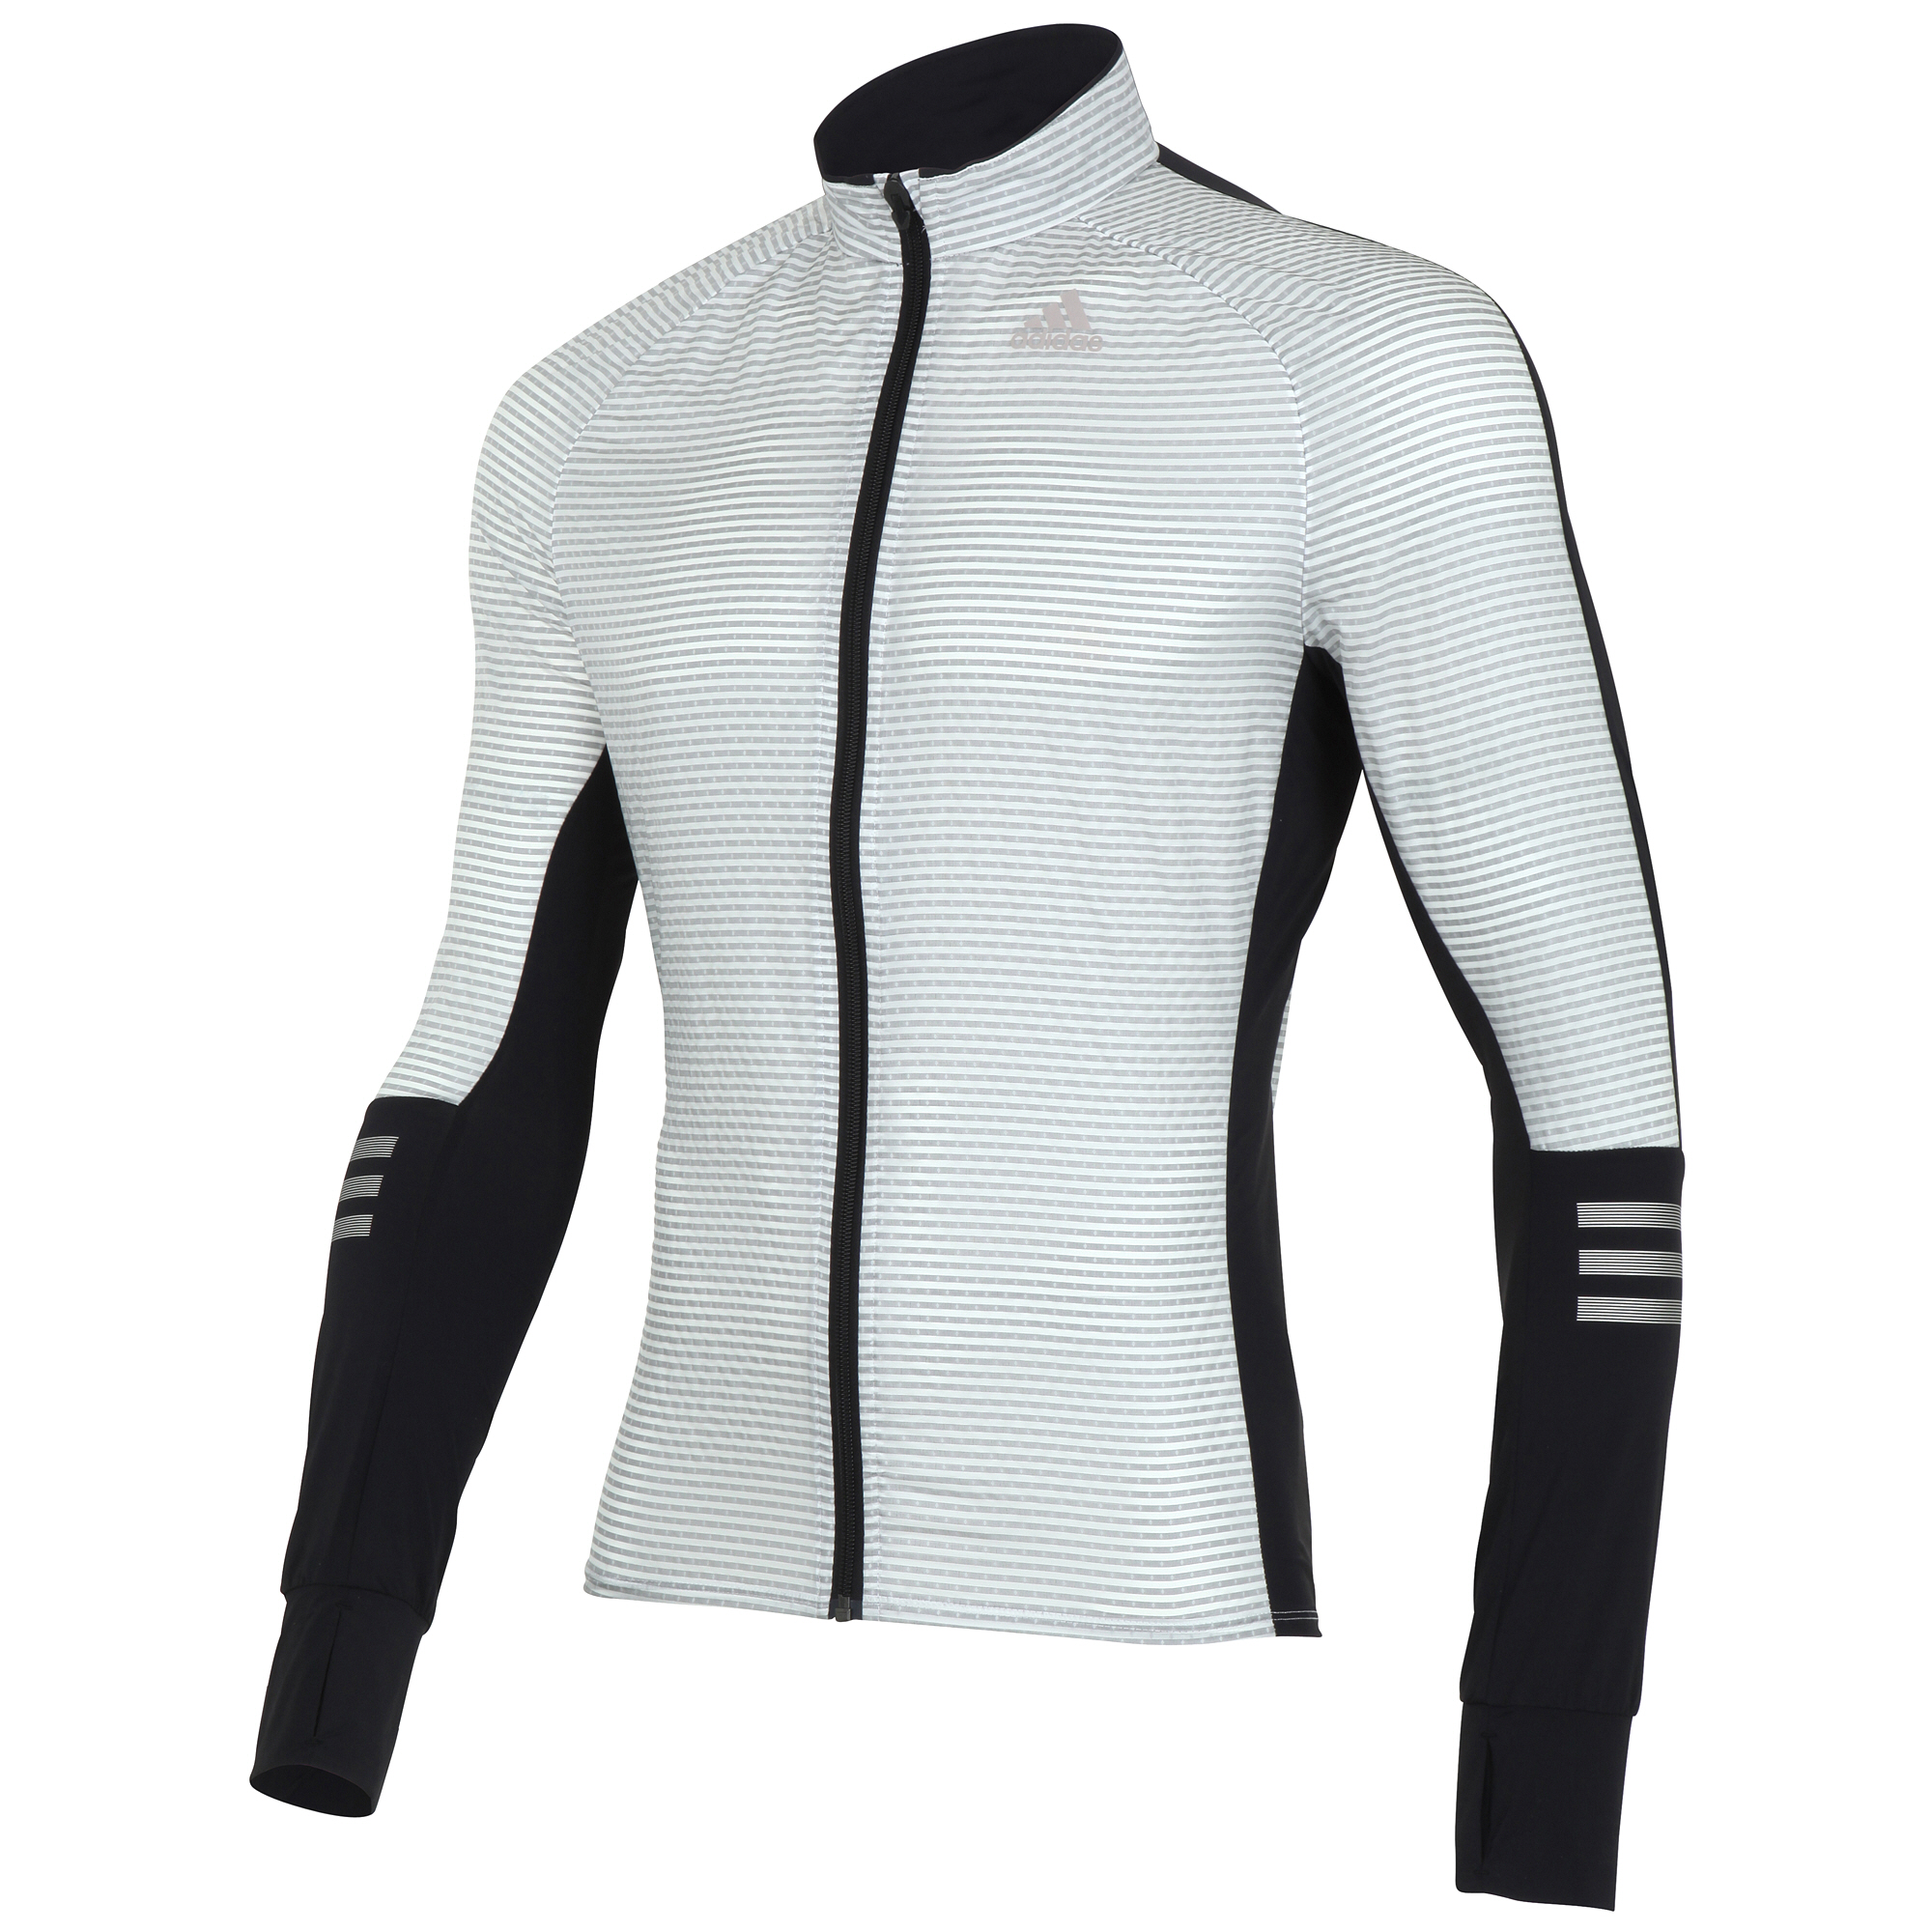 Coupe Vent Adidas Femme adidas Climaproof Veste Running Climaproof X86xw